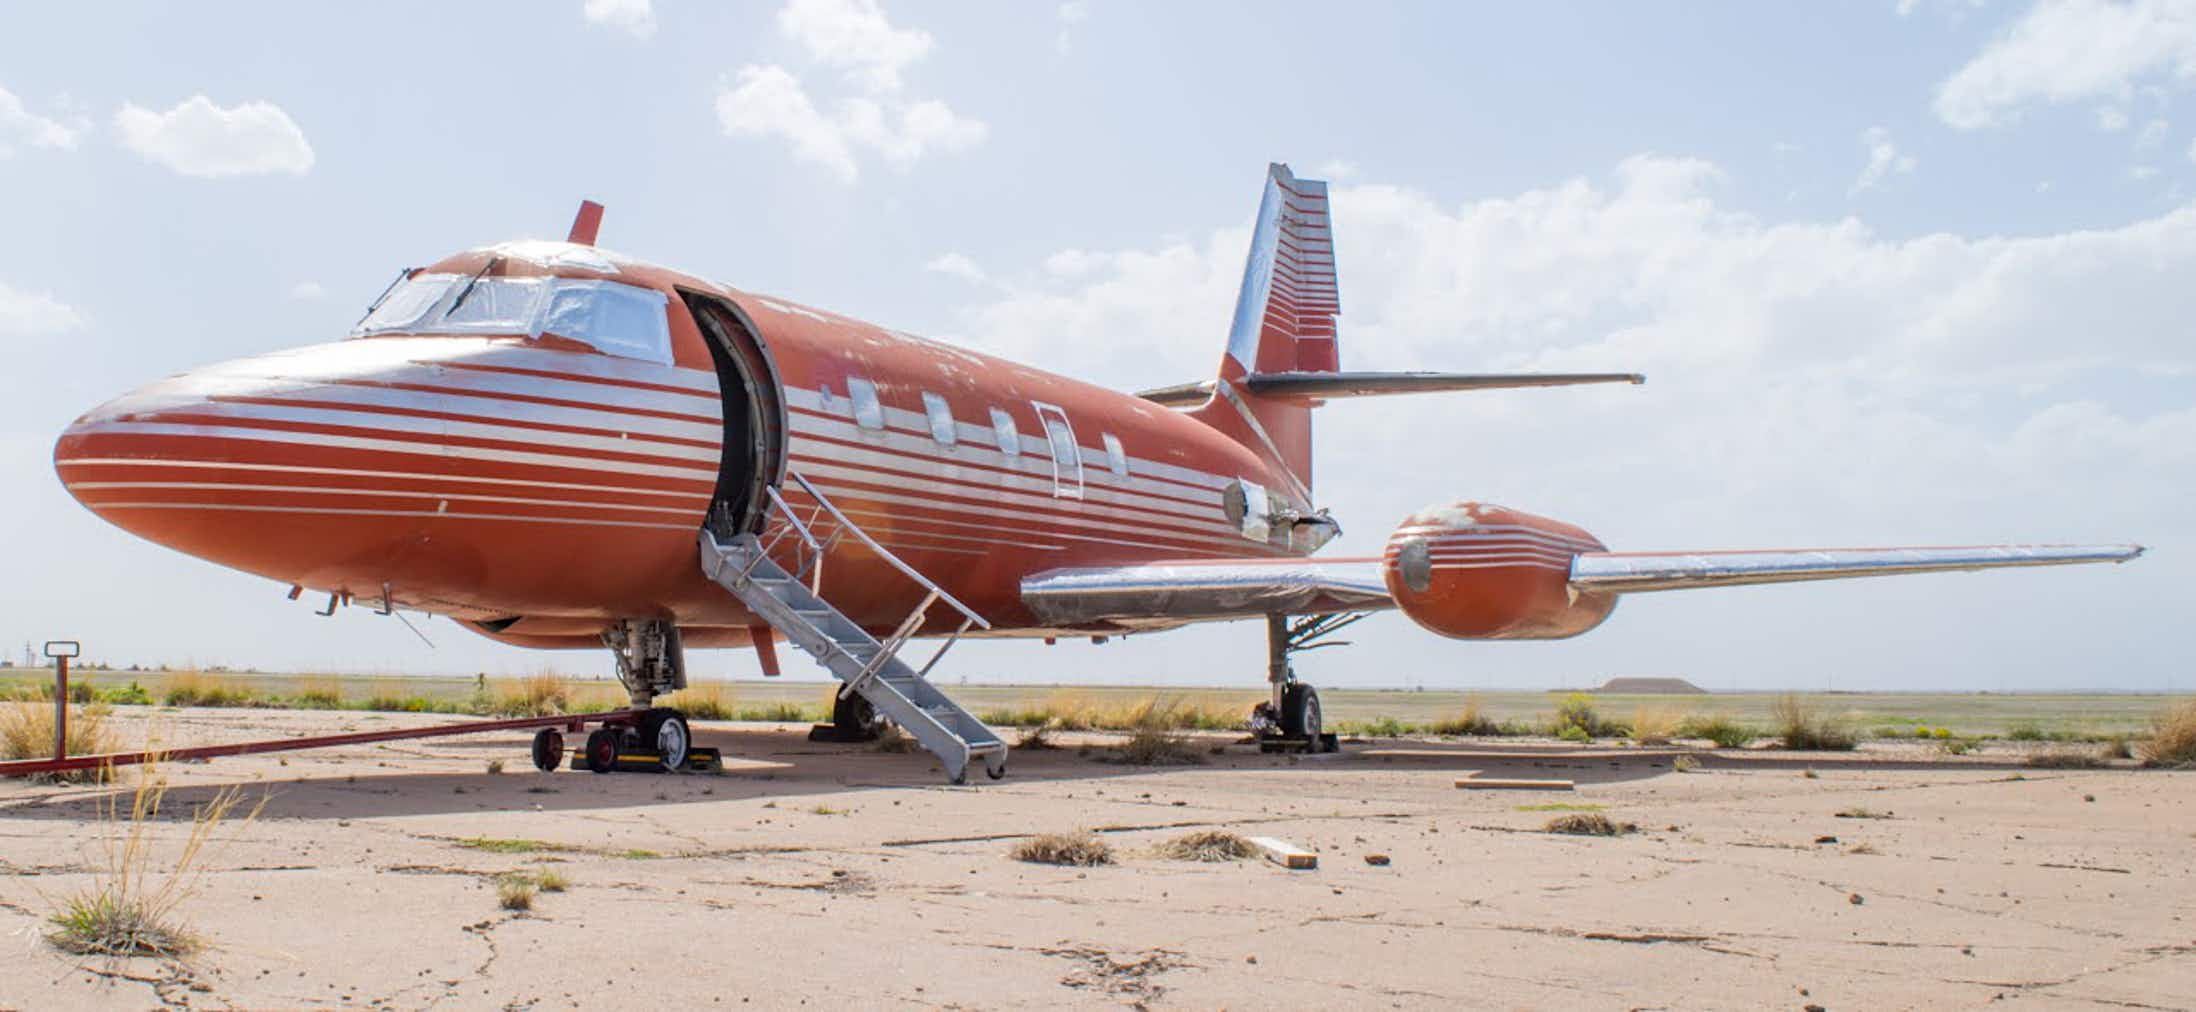 Want to buy a piece of Rock 'n' Roll history? Elvis Presley's first private jet is up for auction